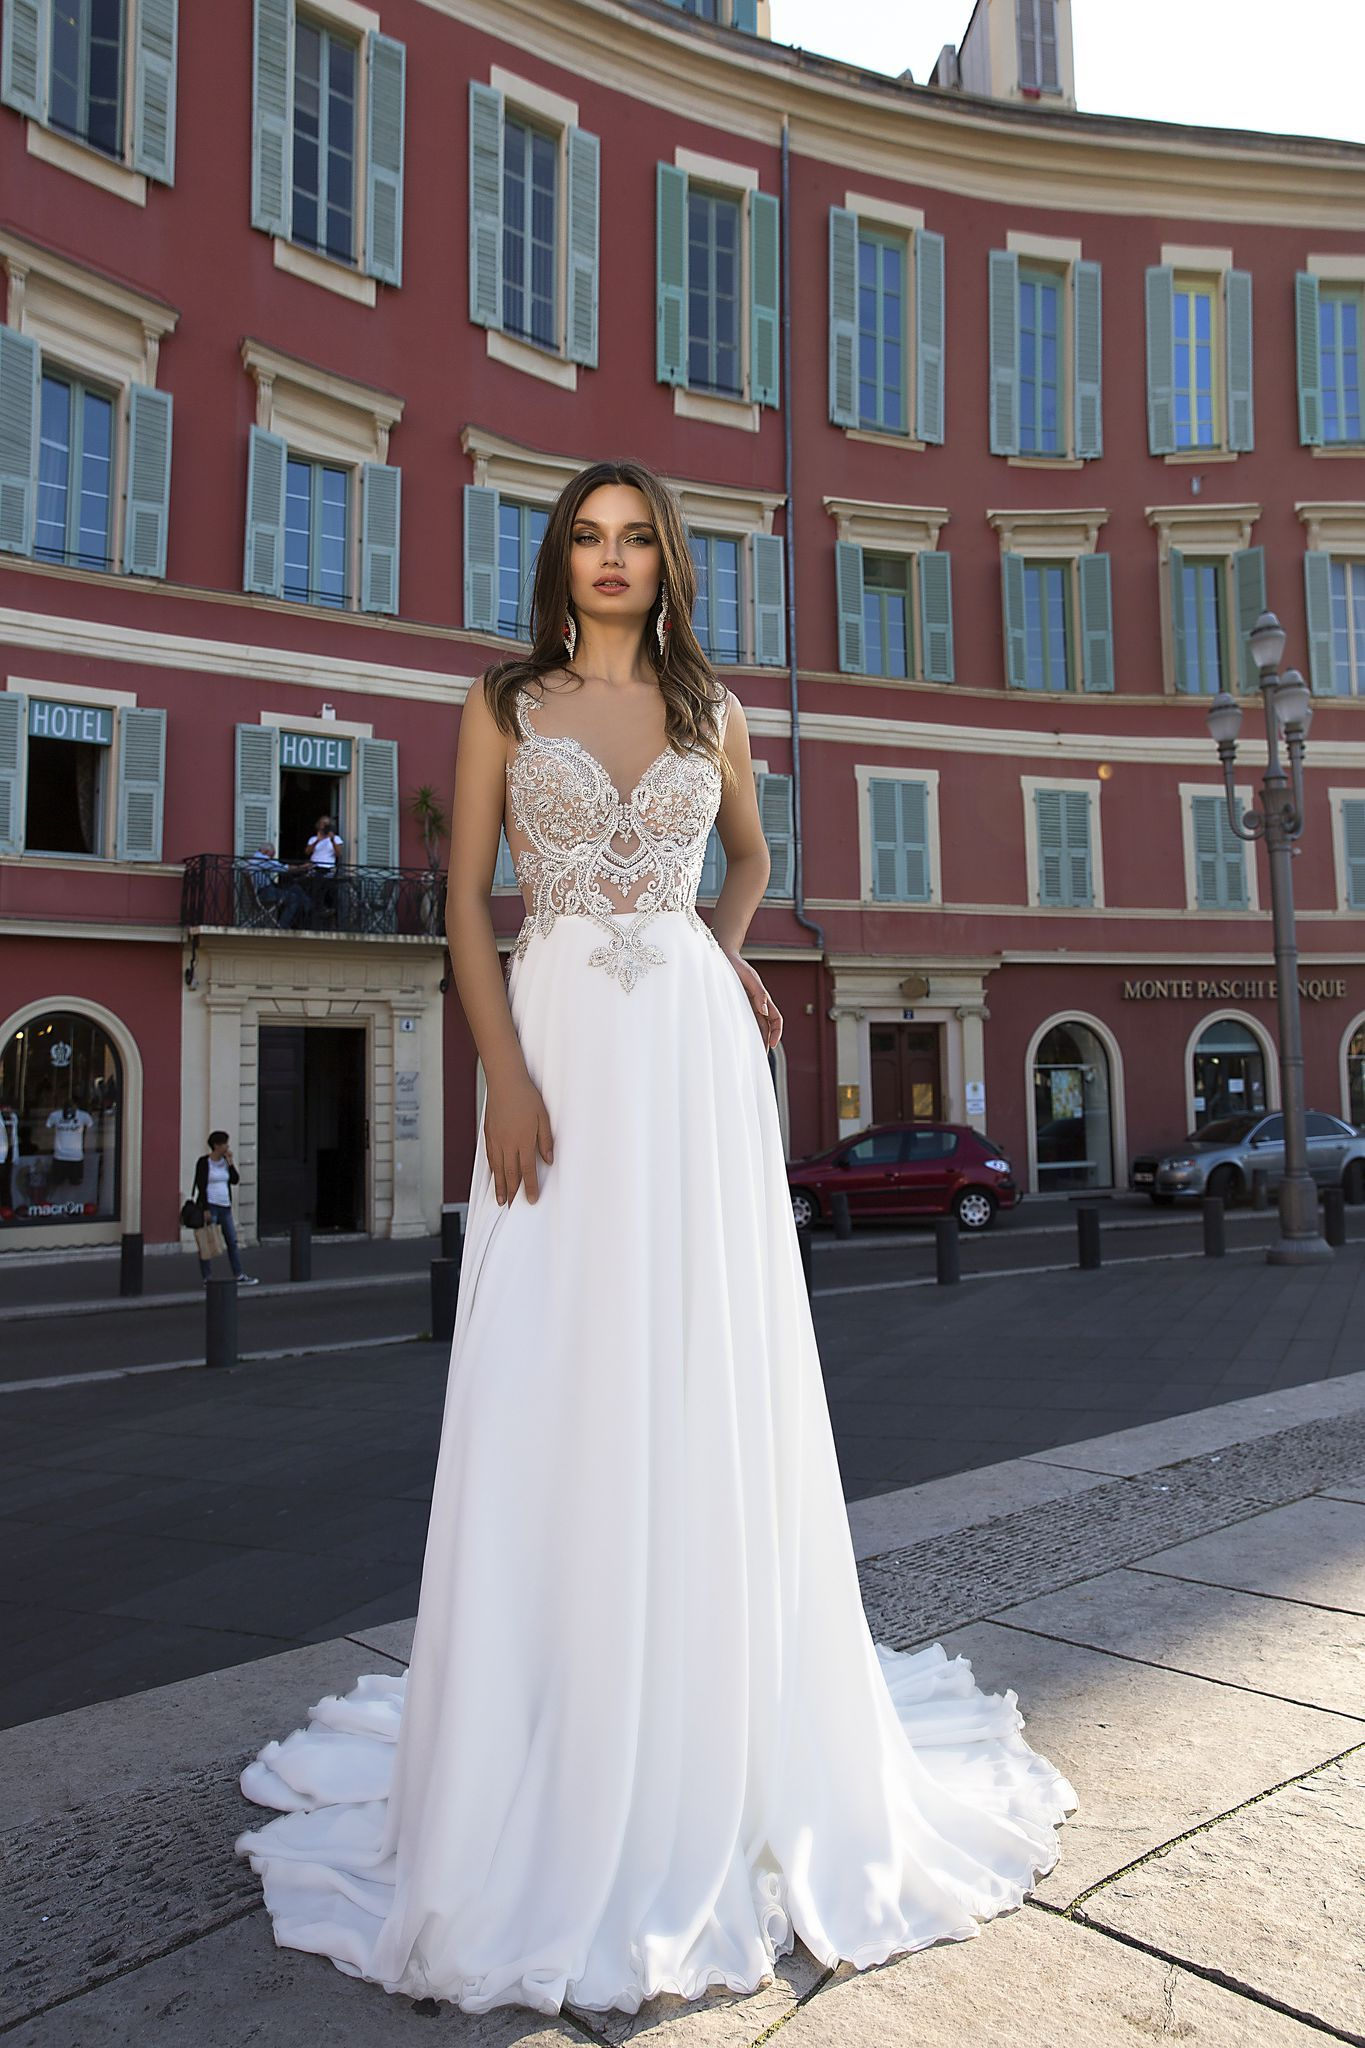 Lace wedding dress for short person january 2019 wedding dress Jacqueline Каталог страница товара u Tina Valerdi